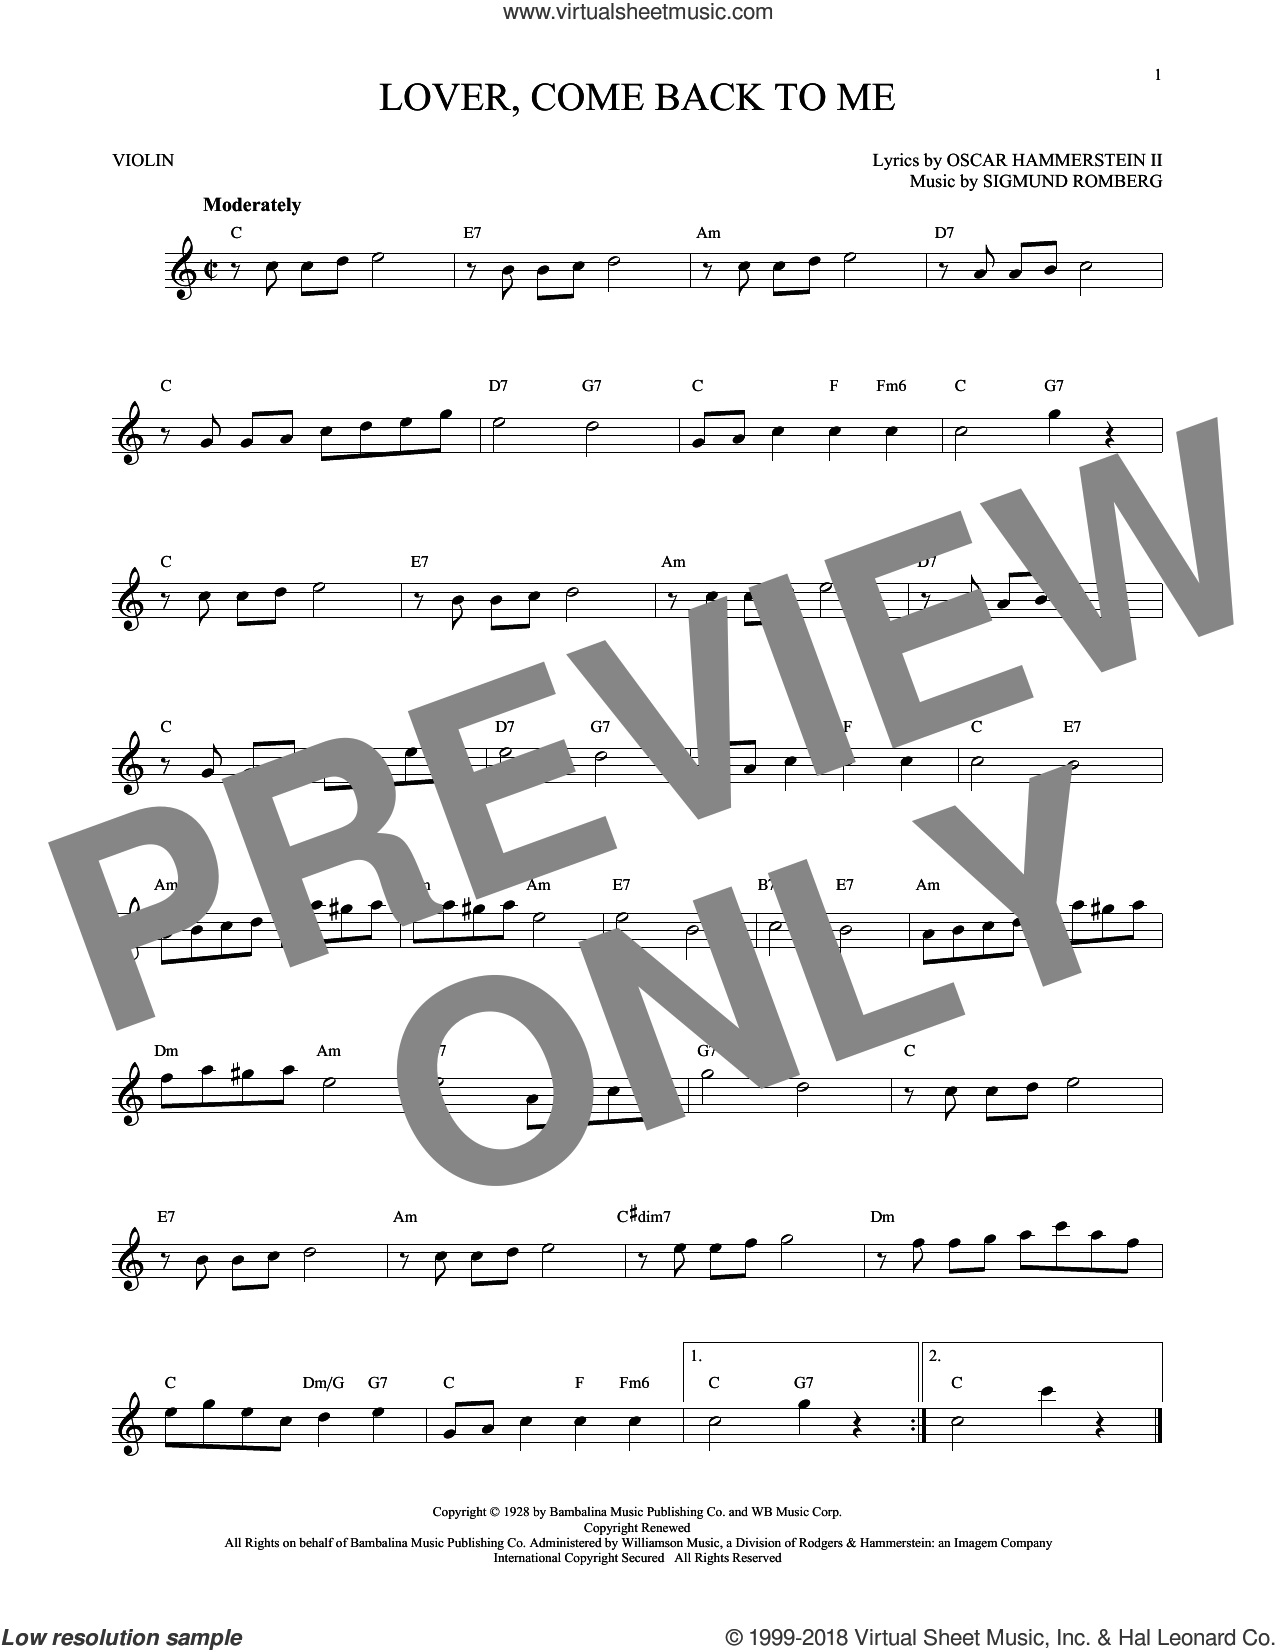 Lover, Come Back To Me sheet music for violin solo by Oscar II Hammerstein and Sigmund Romberg. Score Image Preview.